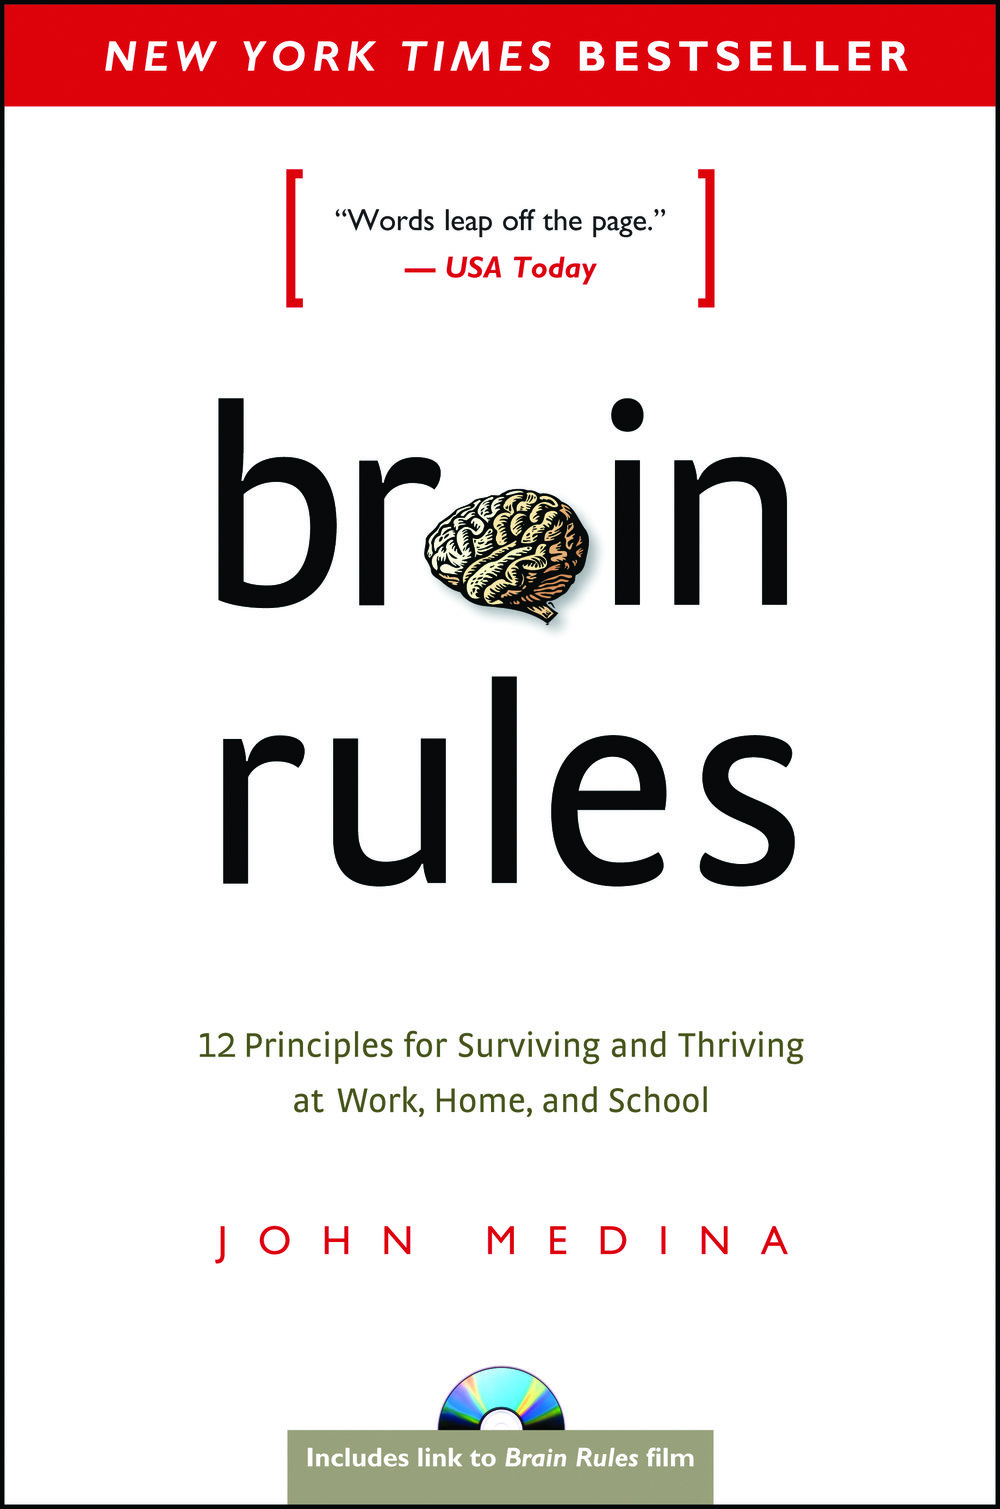 """Brain Rules - by John Medina""""This book details 12 """"brain principles"""" useful for everyday life and work. By showcasing the inner-workings of our brains and helping people outside of the neuroscience fields to better understand their brains; the book helps individuals capture how we can work with – not against – our minds by better understanding them. Intersecting topics/principles cover memory sleep, memory, and gender differences.""""- Wes Shoger, Landscape Architect"""